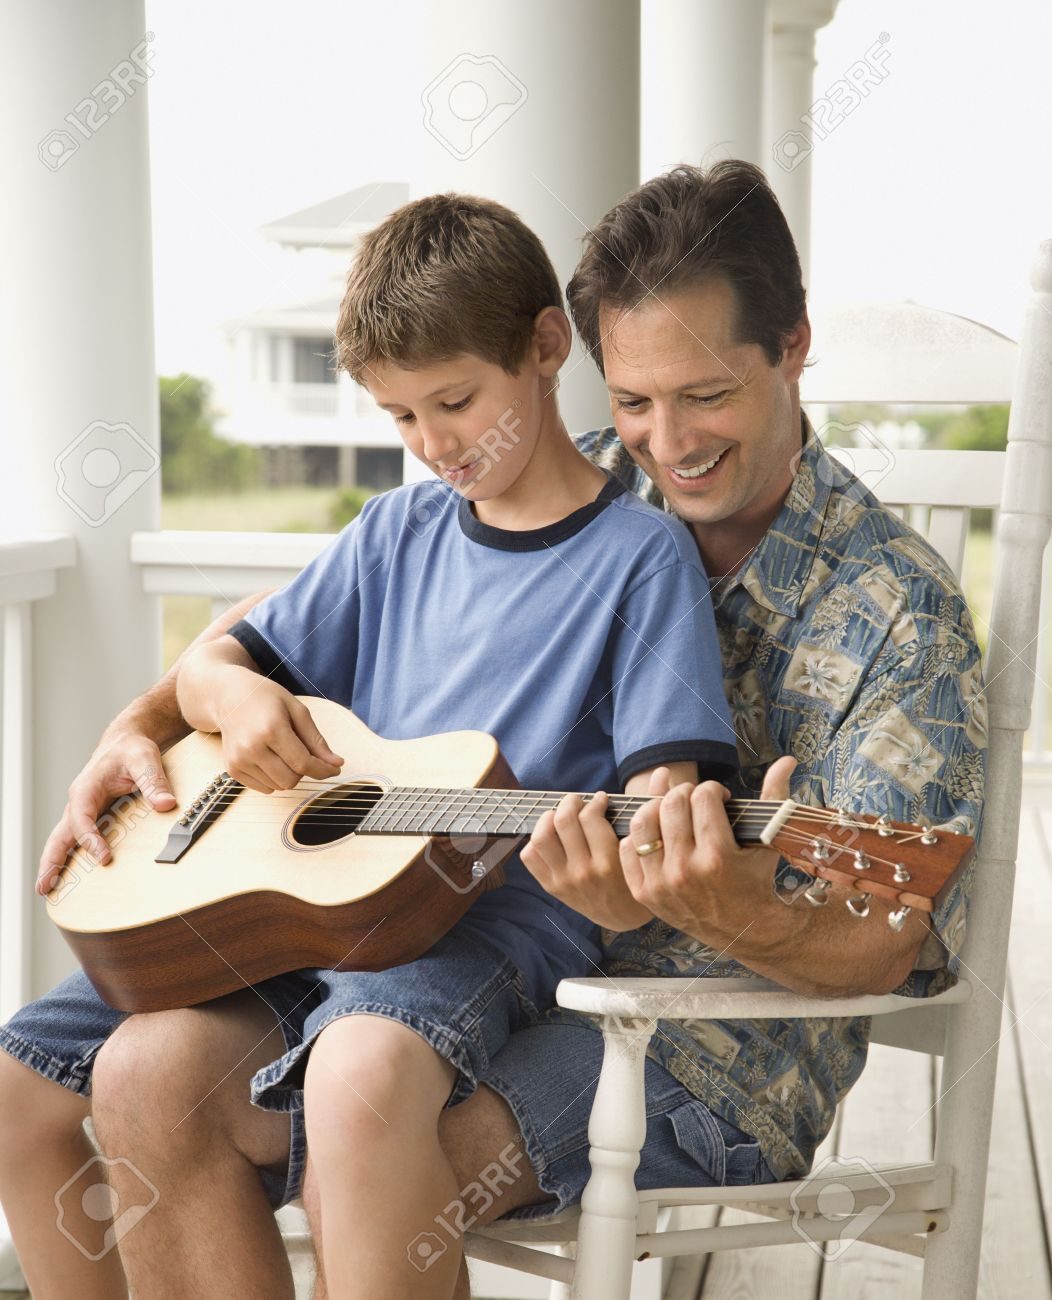 Son sits on his father's lap while playing guitar. Vertical shot. Stock Photo - 6455266